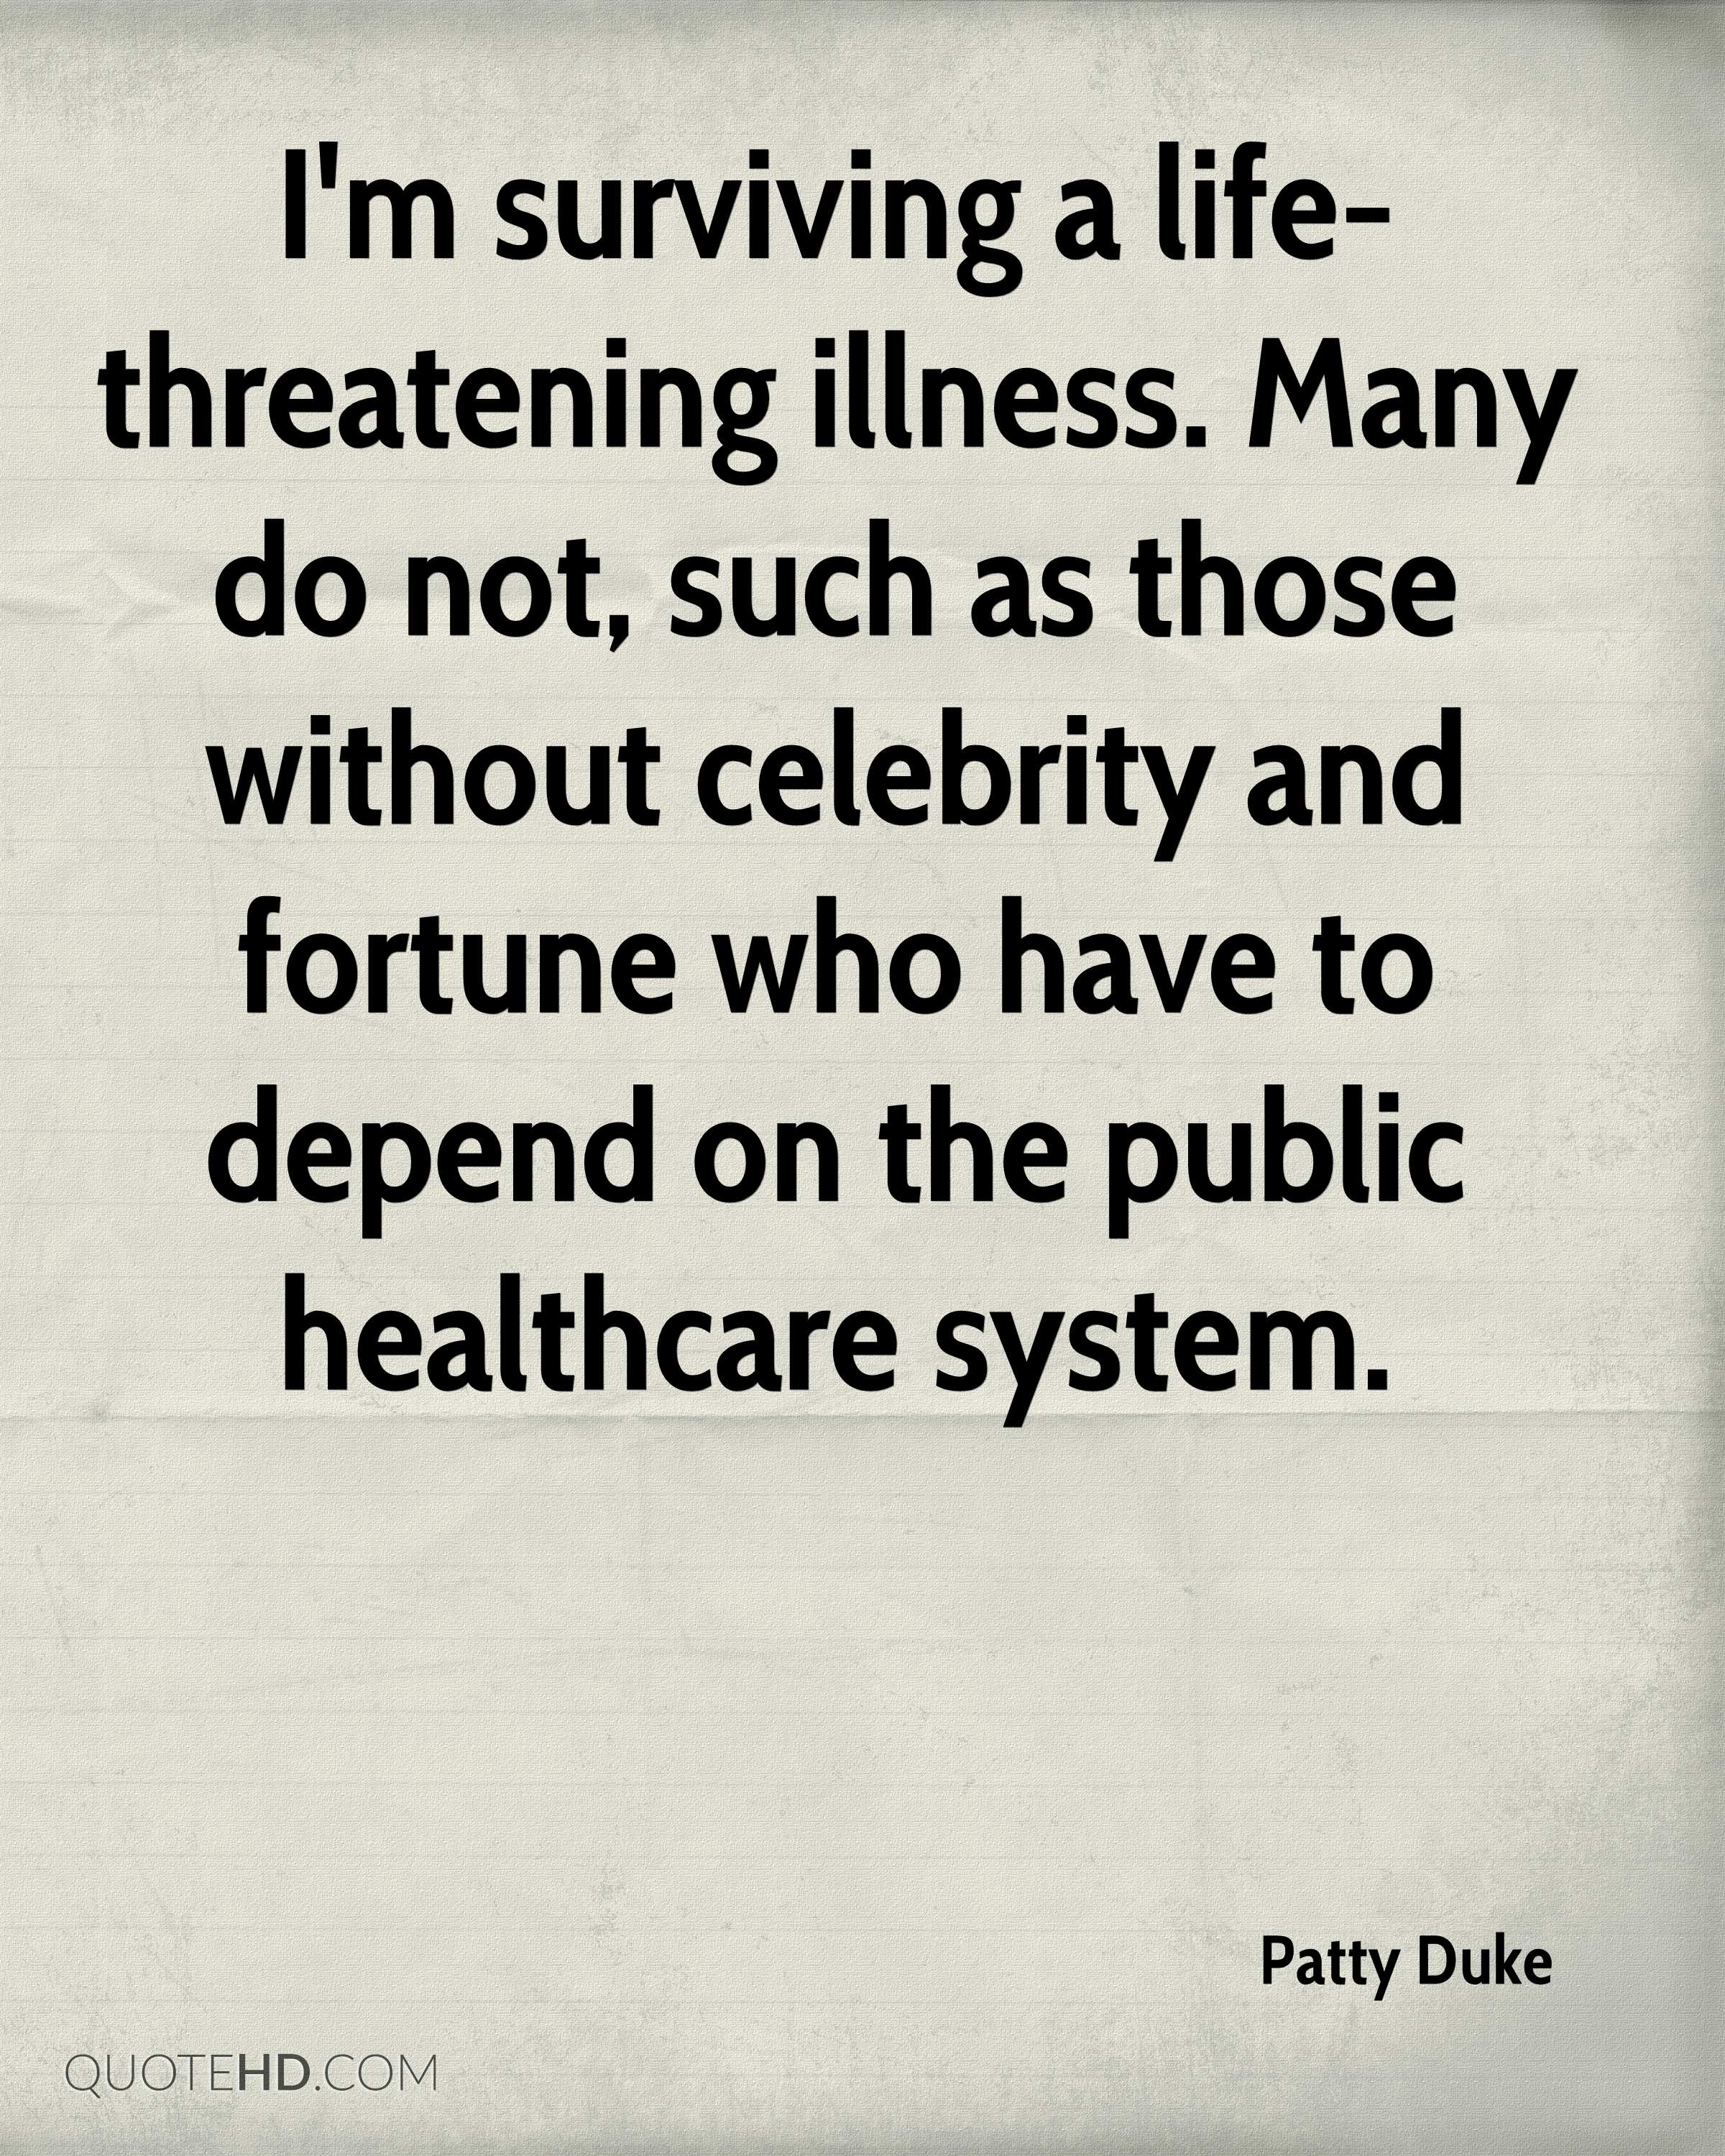 I'm surviving a life-threatening illness. Many do not, such as those without celebrity and fortune who have to depend on the public healthcare system.